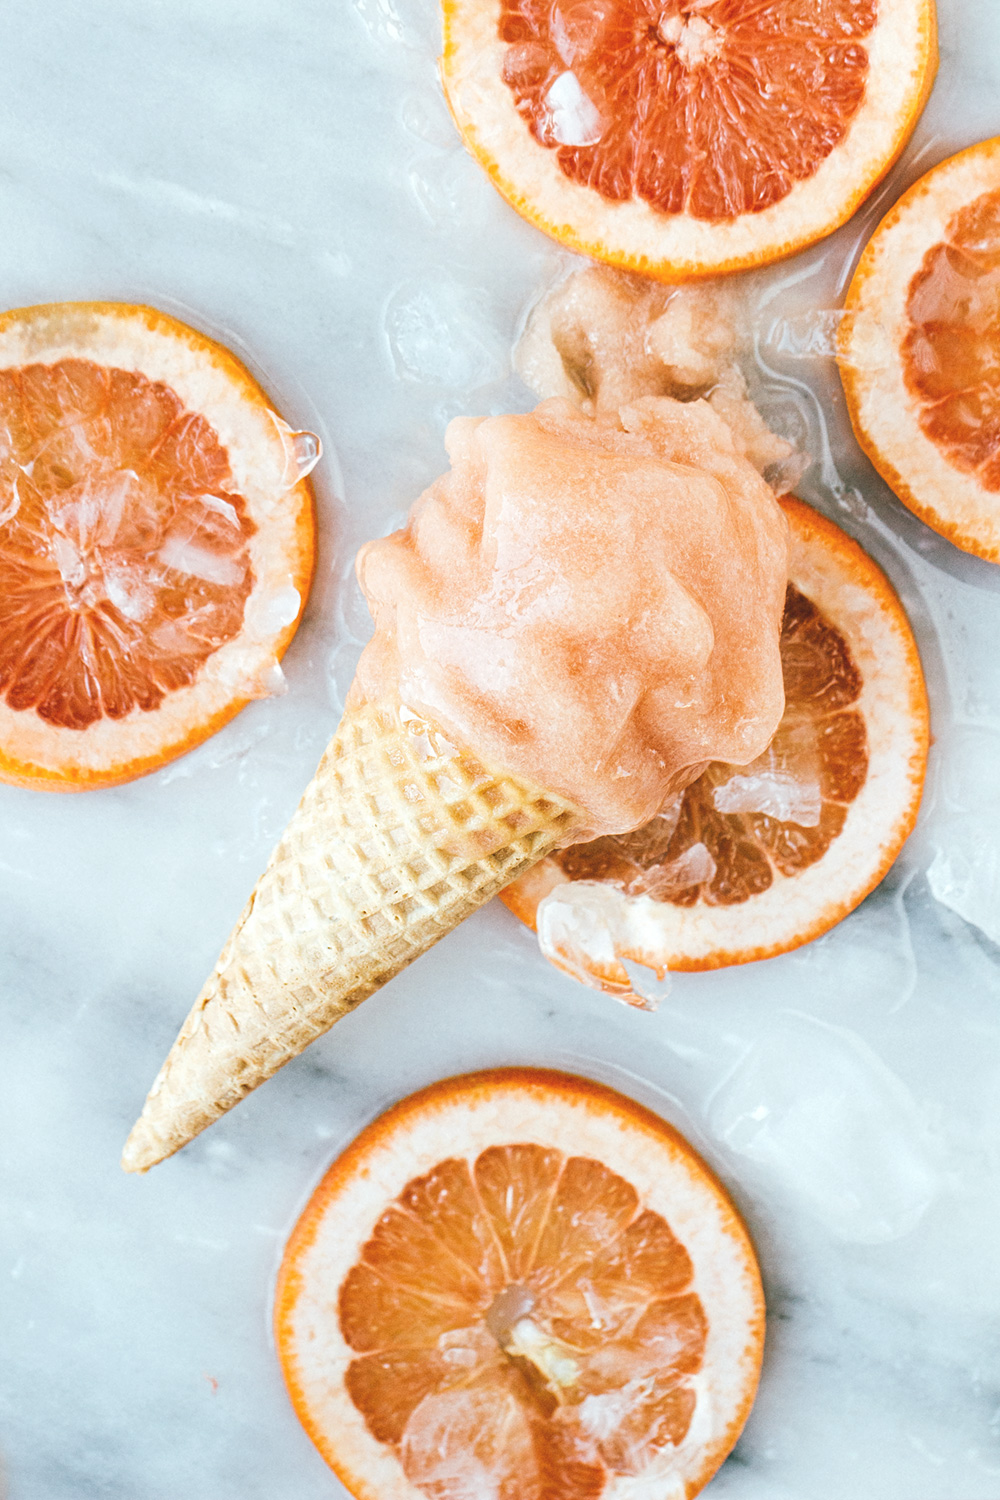 Grapefruit-Guava-and-Rum-Sorbet2.jpg